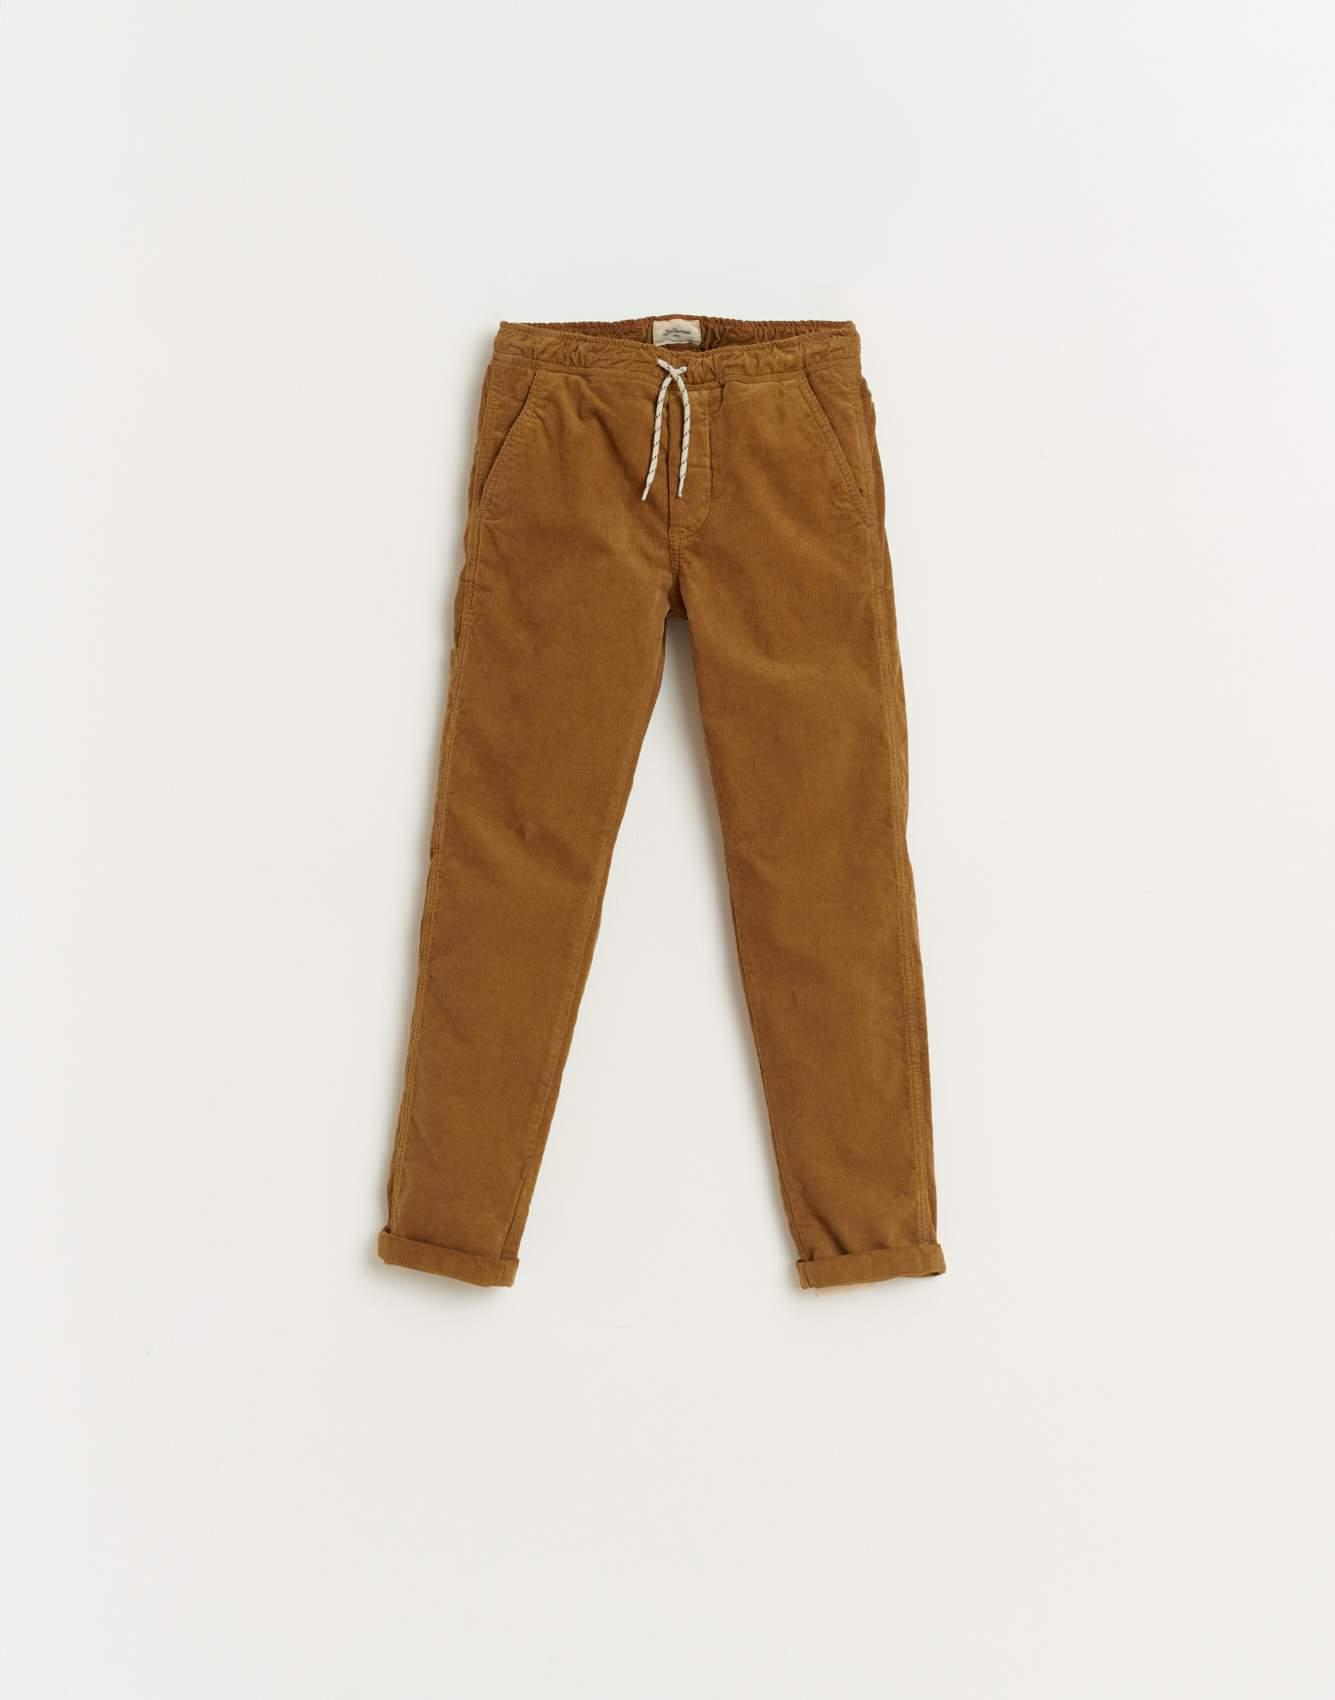 BLR_BOYS_TROUSER_PAINTER92_R0728_5000x5000.jpg